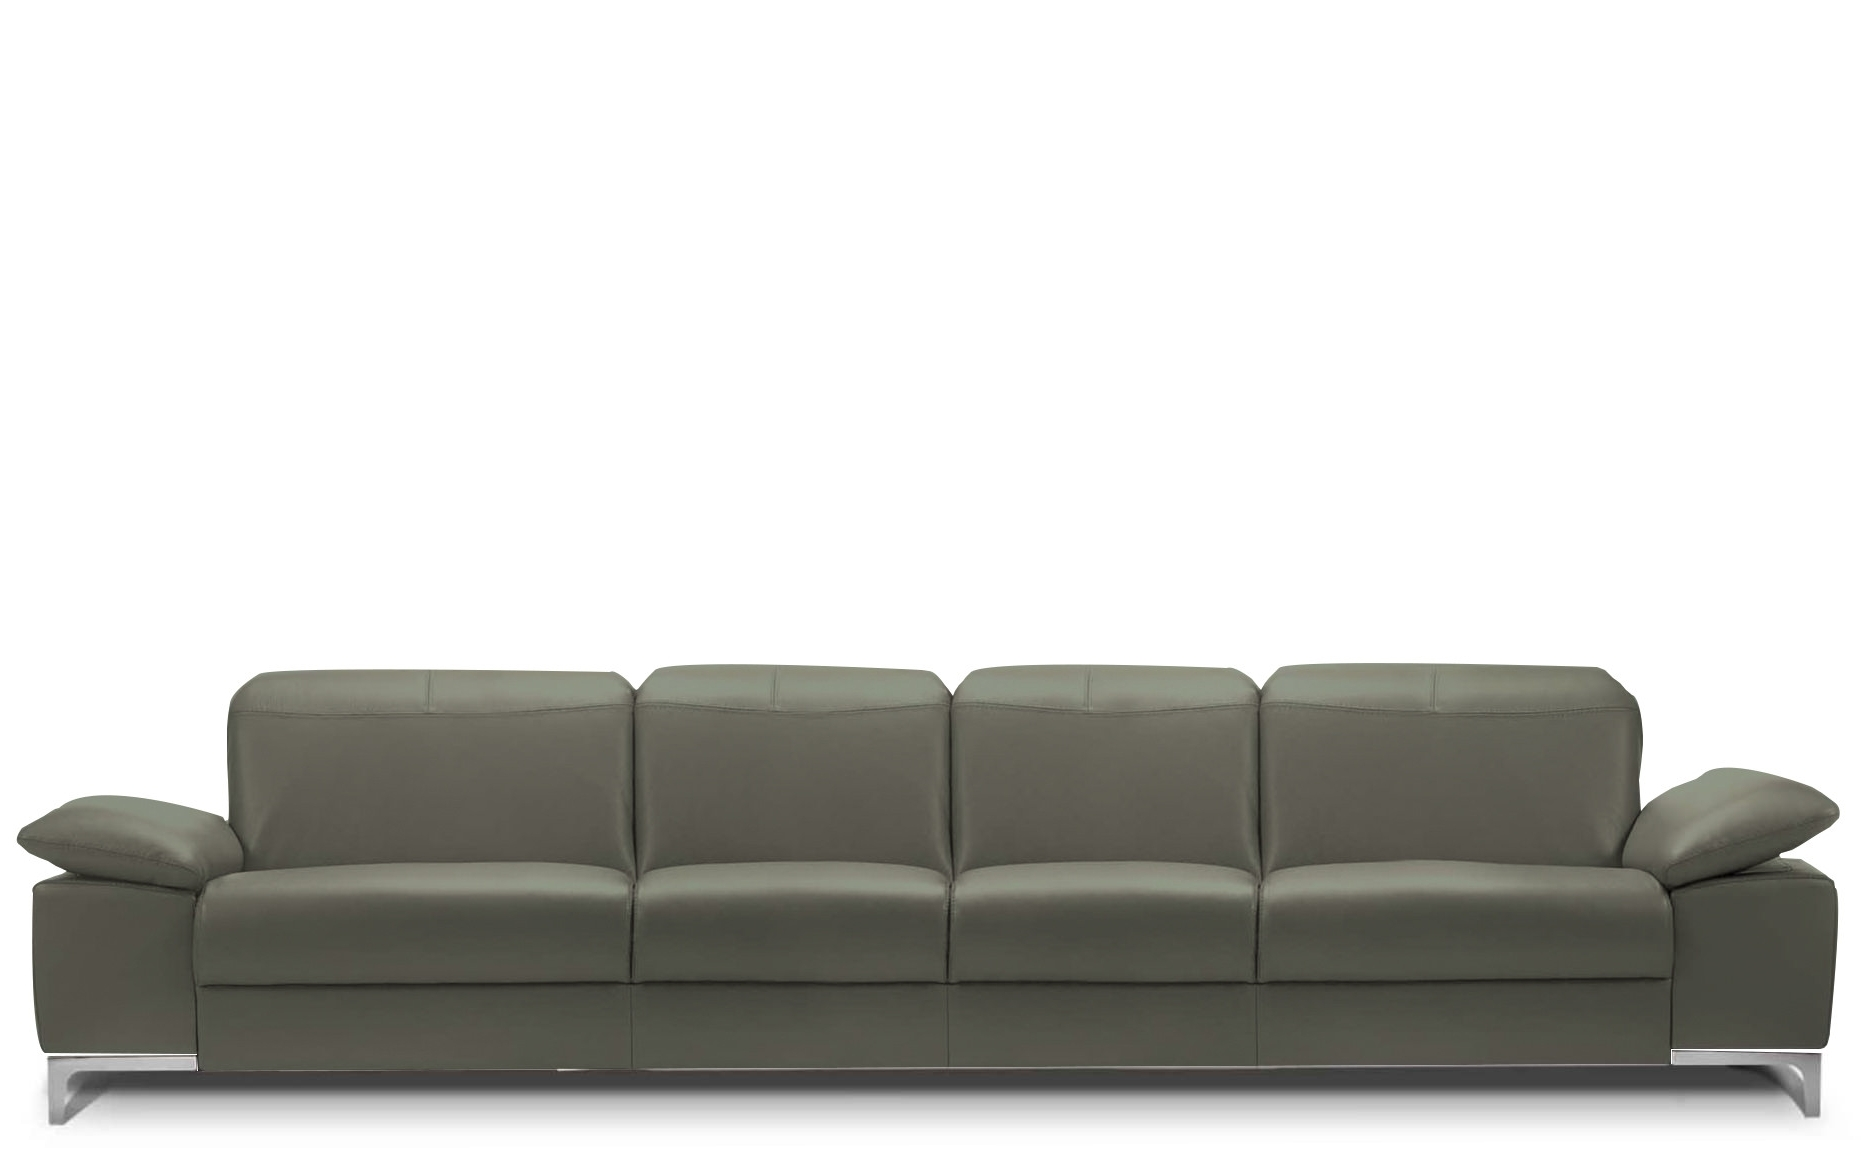 Rom Chronos 4 Seater Leather Sofa (View 2 of 15)